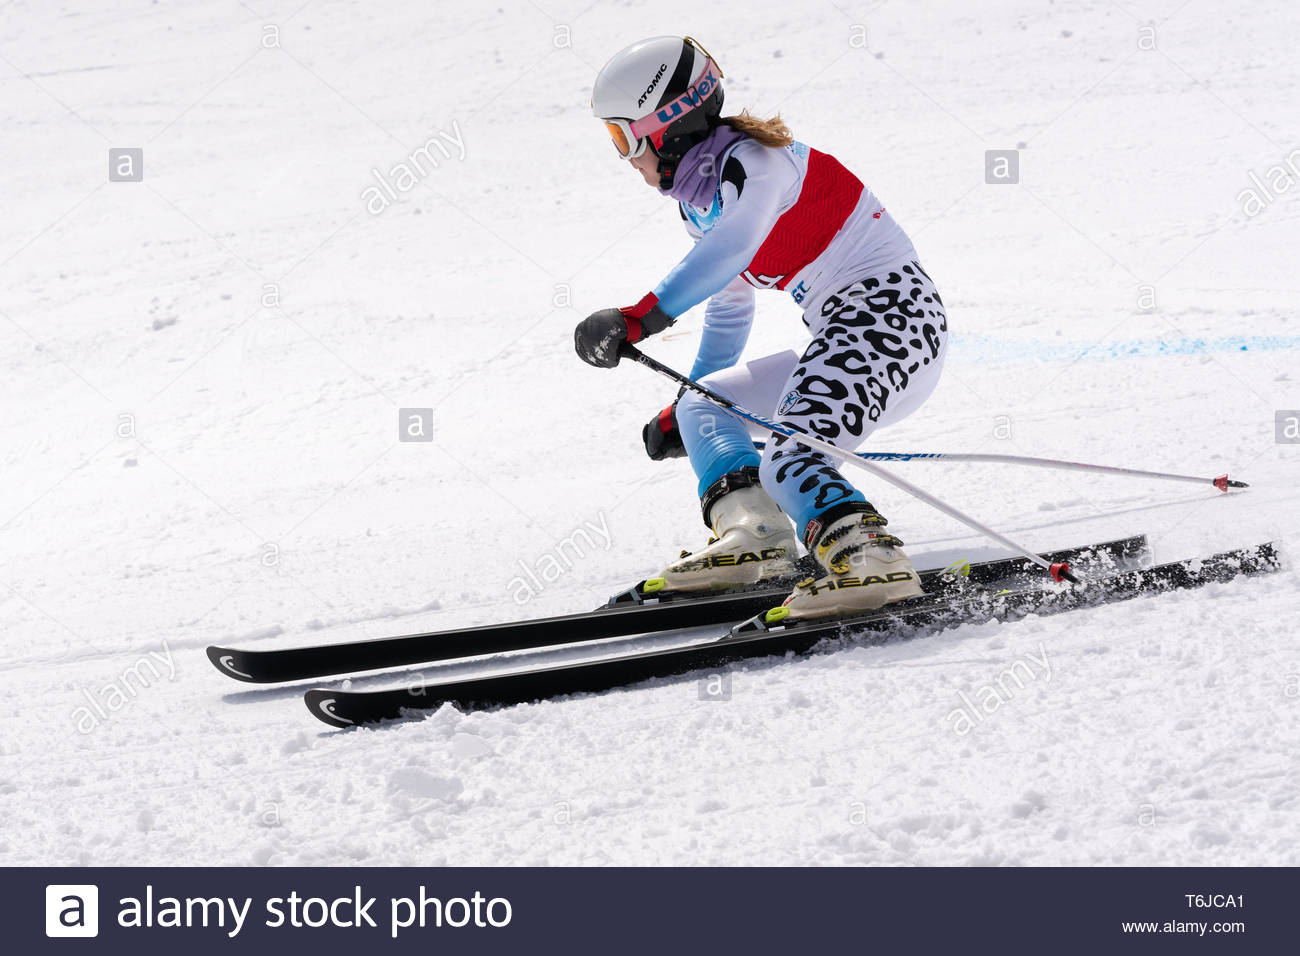 KAMCHATKA PENINSULA, RUSSIAN FEDERATION - APRIL 1, 2019: Russian Women's Alpine Skiing Championship, giant slalom. Mountain skier Vitaliya Kazakova (M - Stock Image